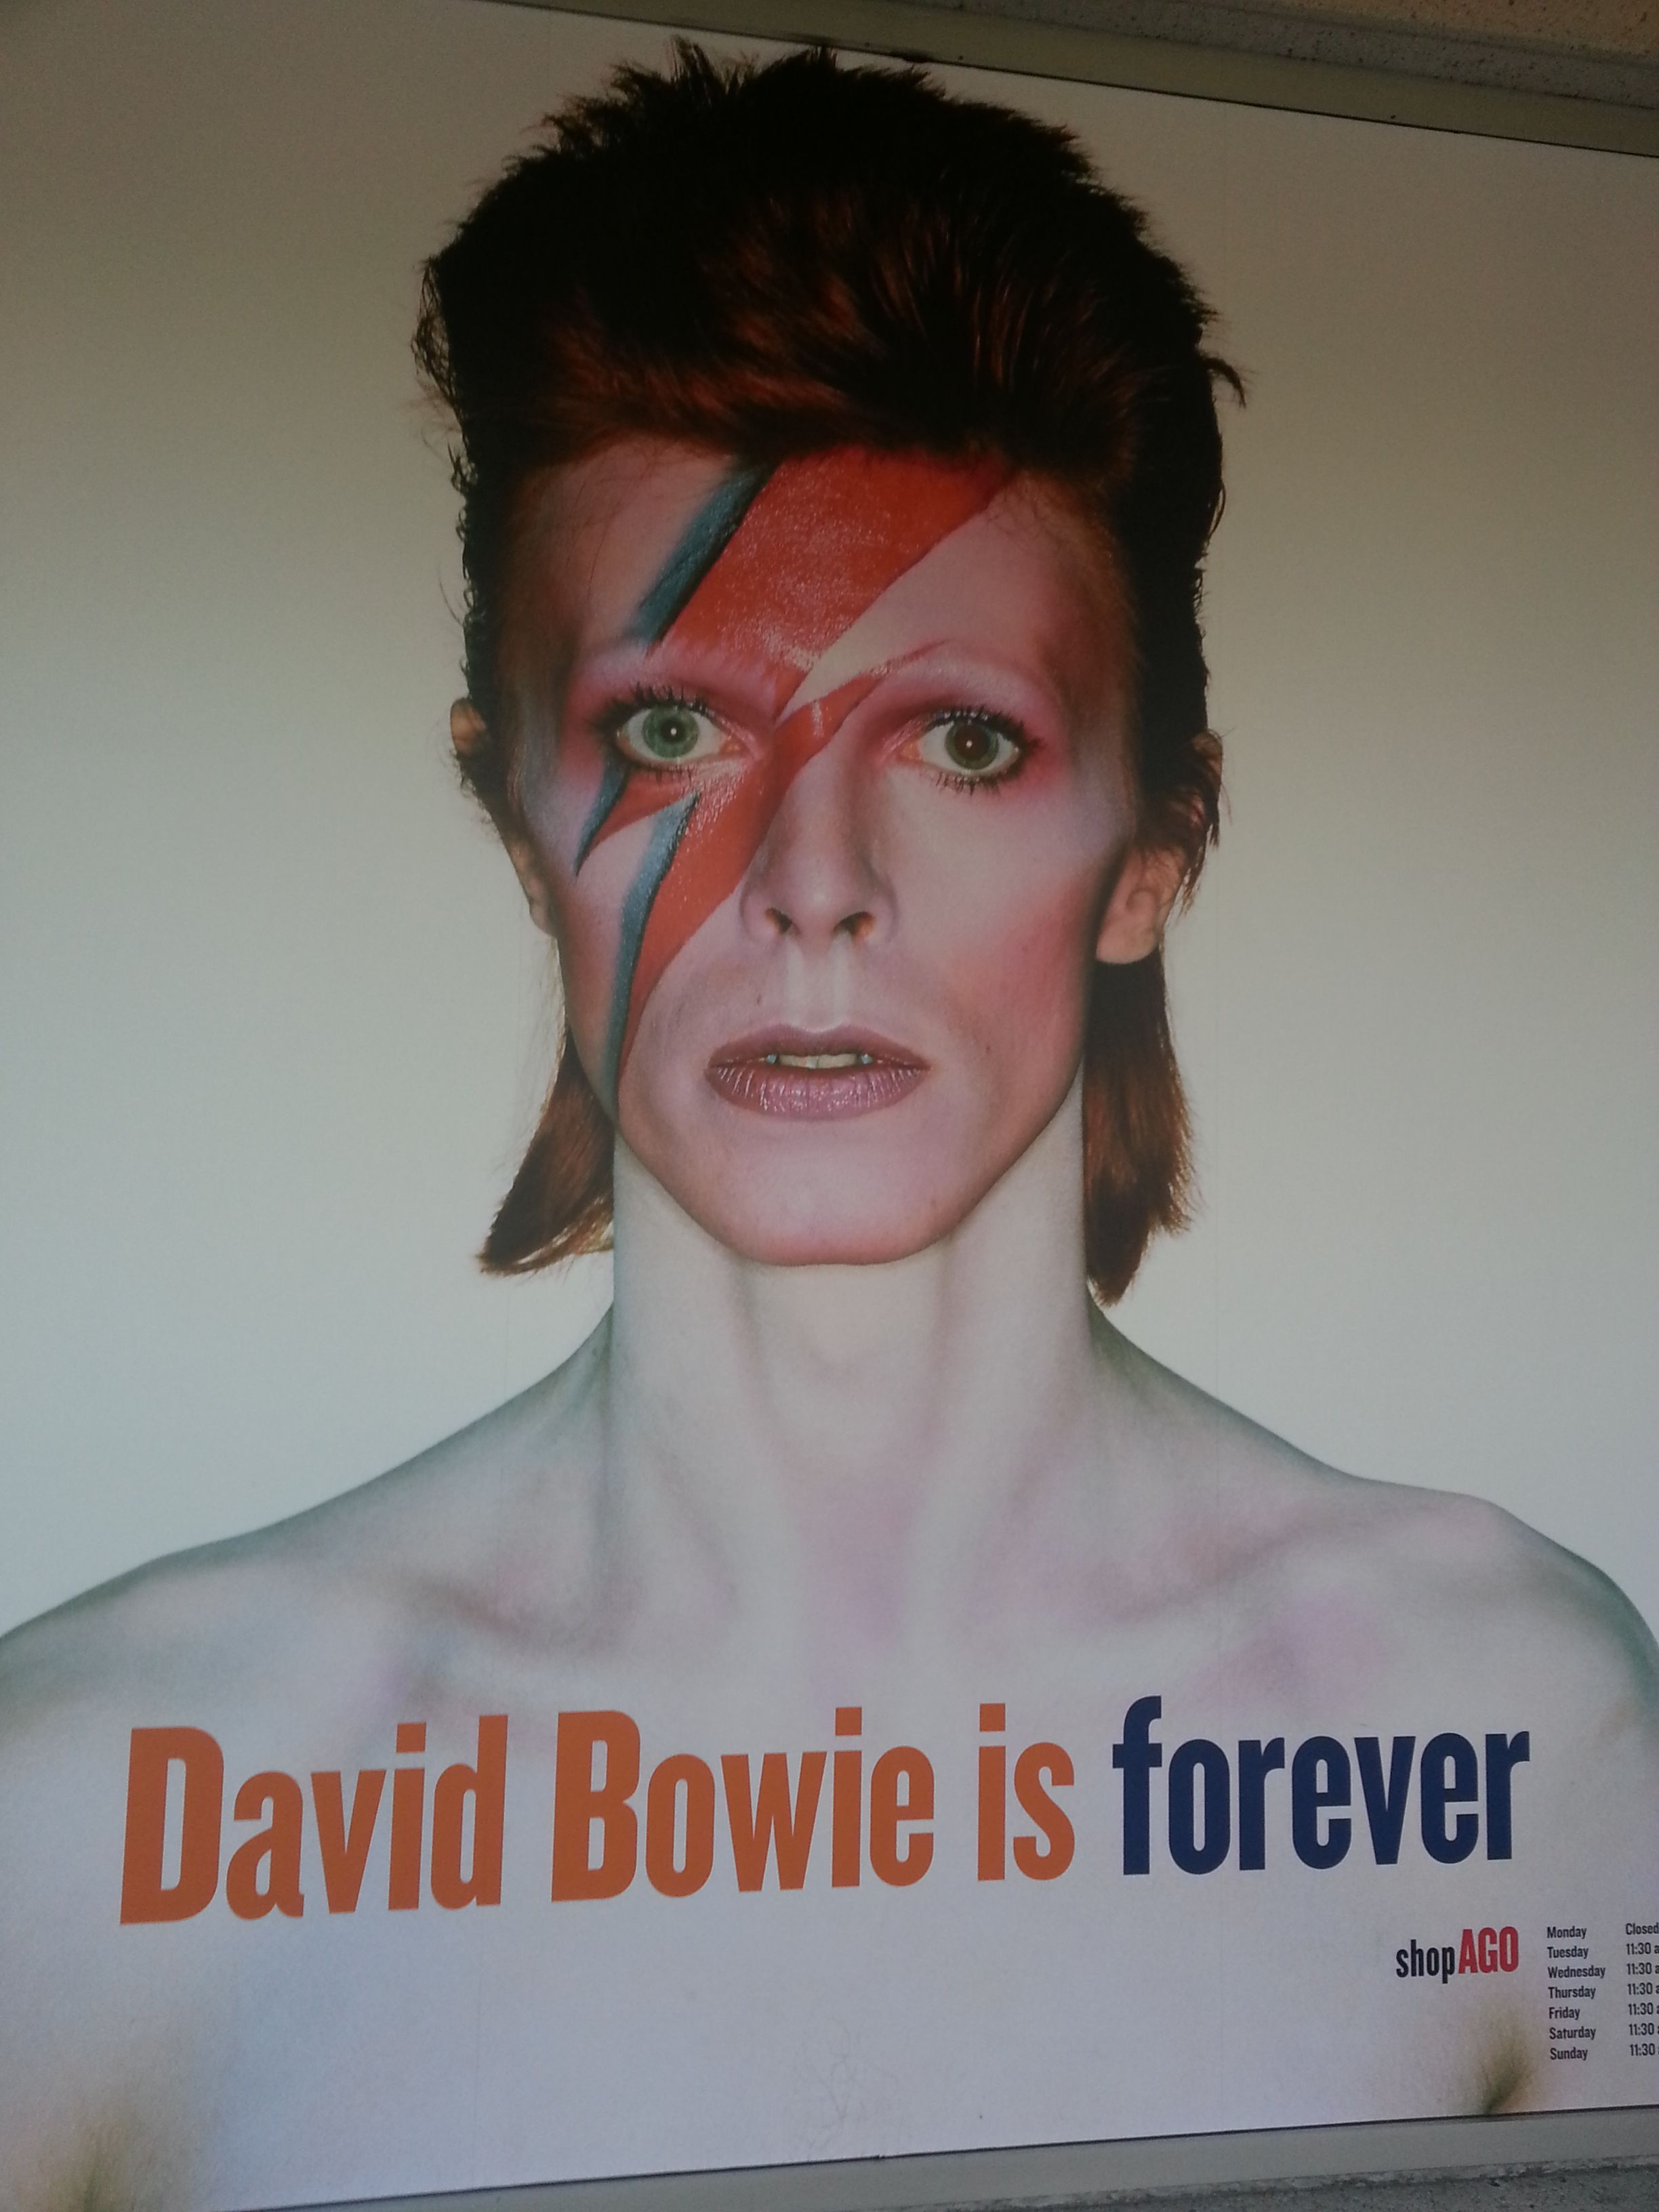 September 20, 2014: The 'David Bowie Is' exhibit opens with a Gala and pre-show, the official opening occurred at The Museum of Contemporary Art Chicago and artEdge 2014. There were showings in both the U.S. and Europe, running through January 4th, 2015.